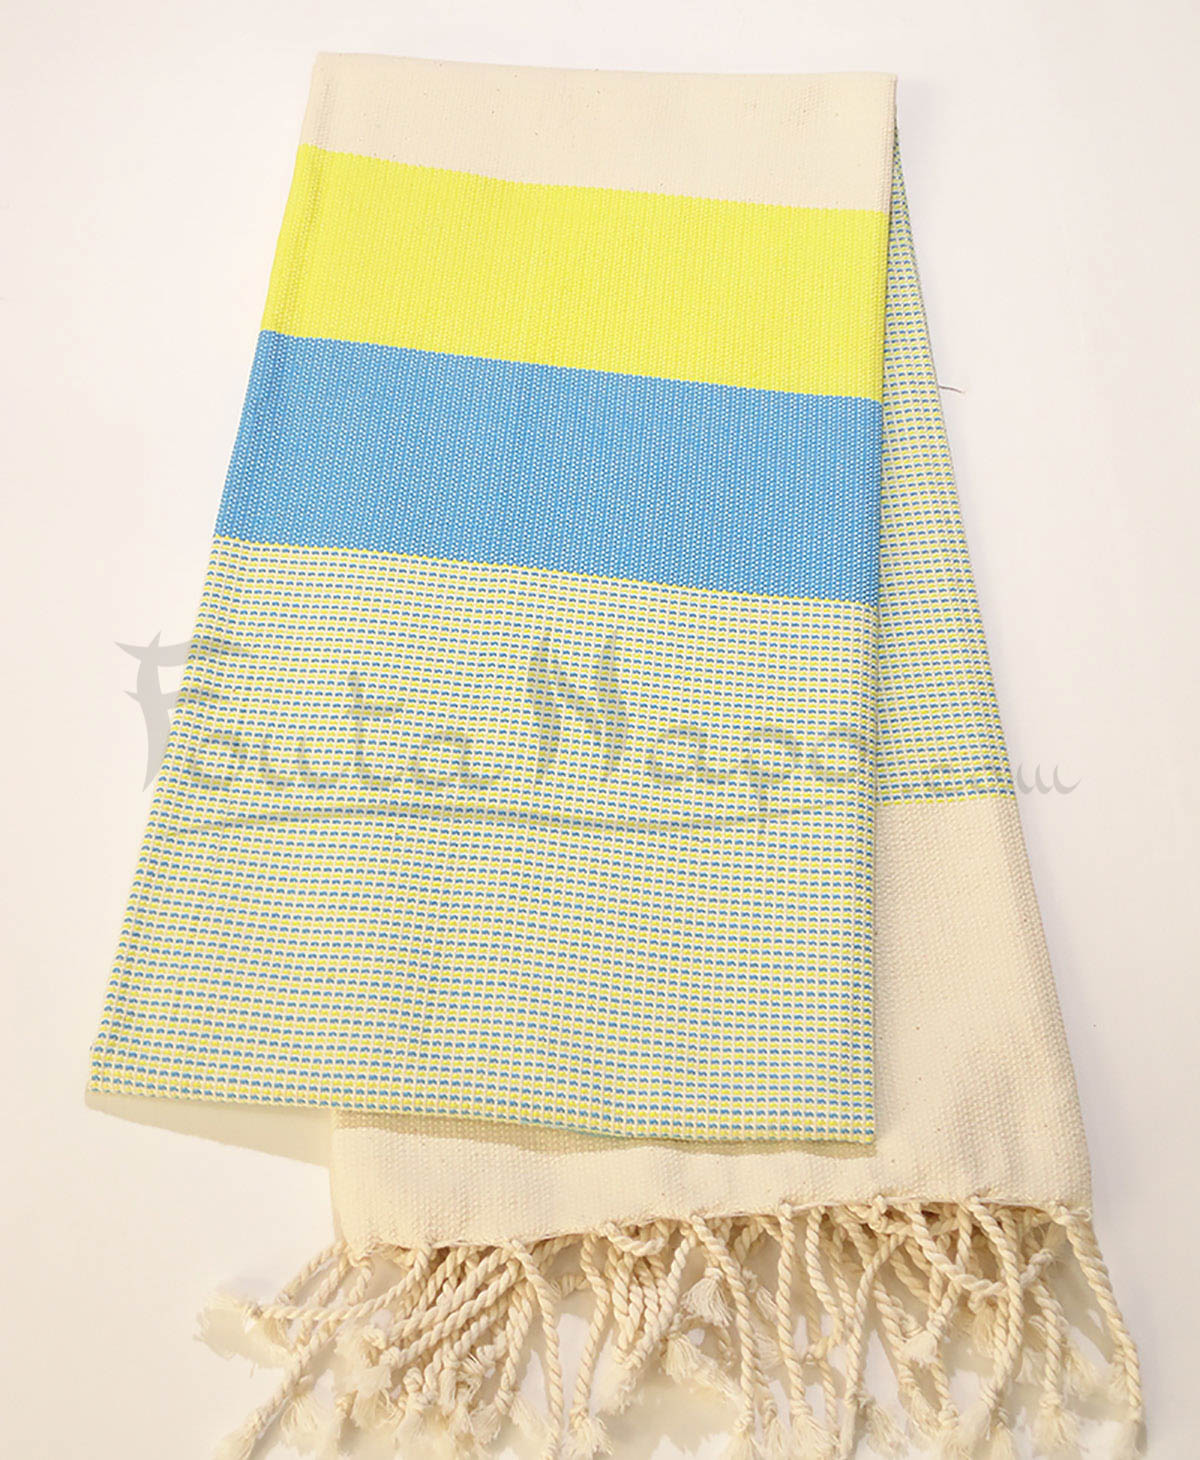 The Fouta Towel Matted pattern Playa